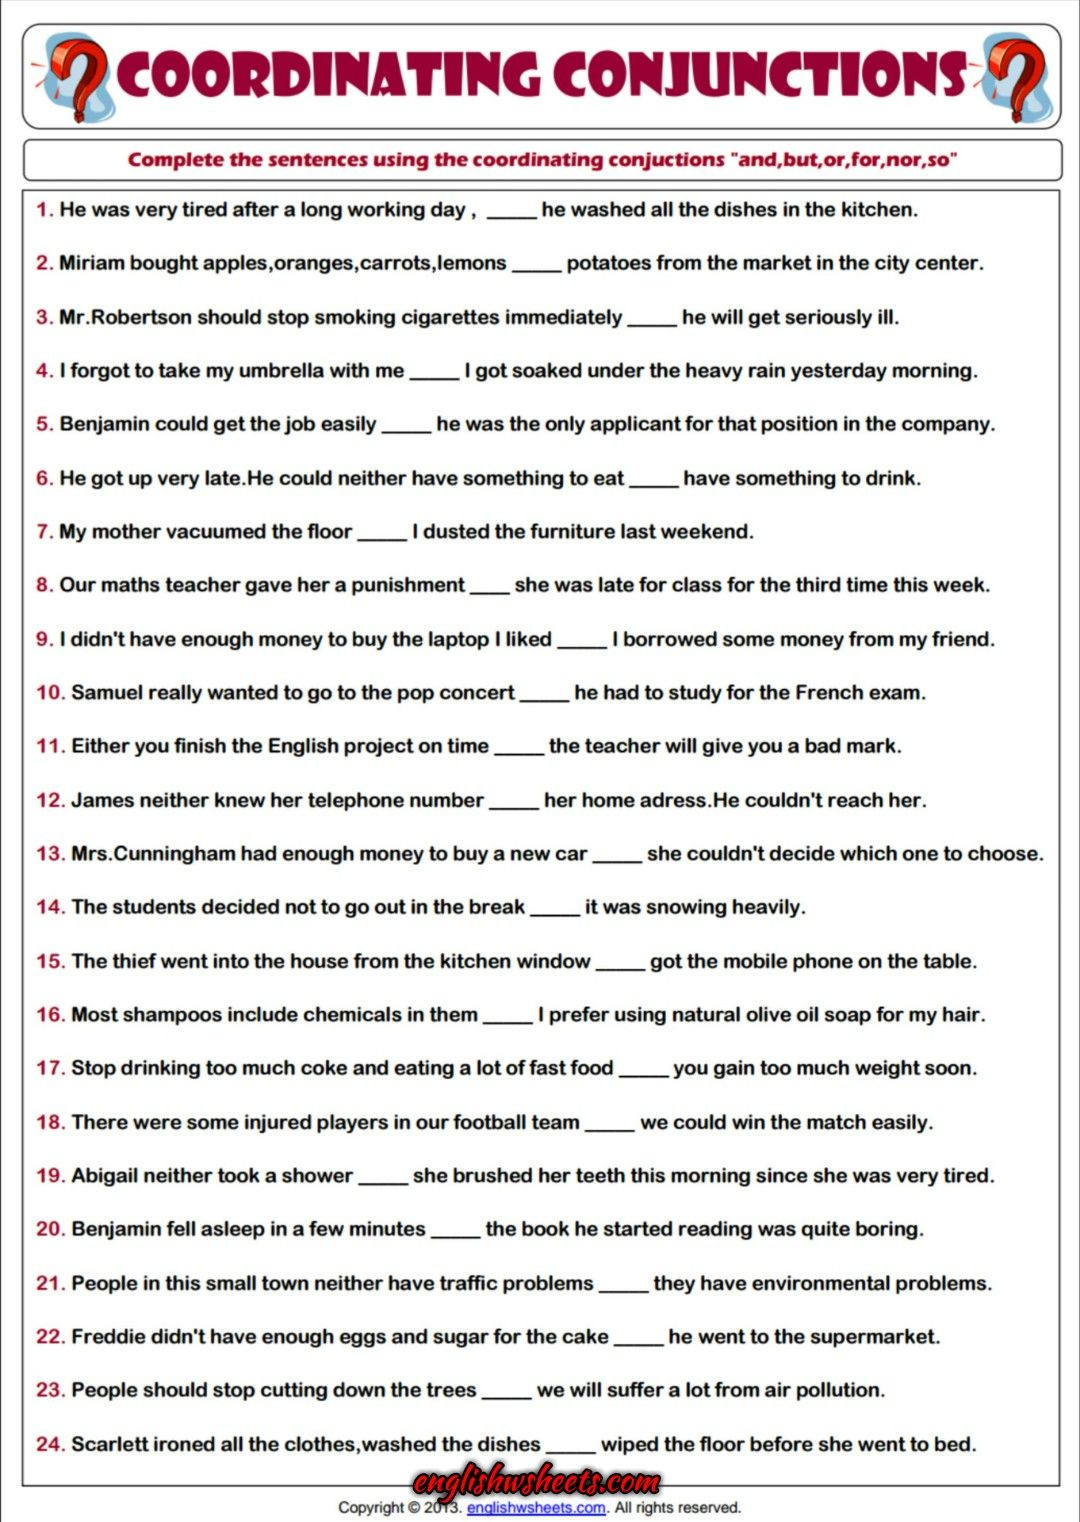 Conjunction Worksheet 5th Grade Coordinating Conjunctions Esl Printable Grammar Worksheet